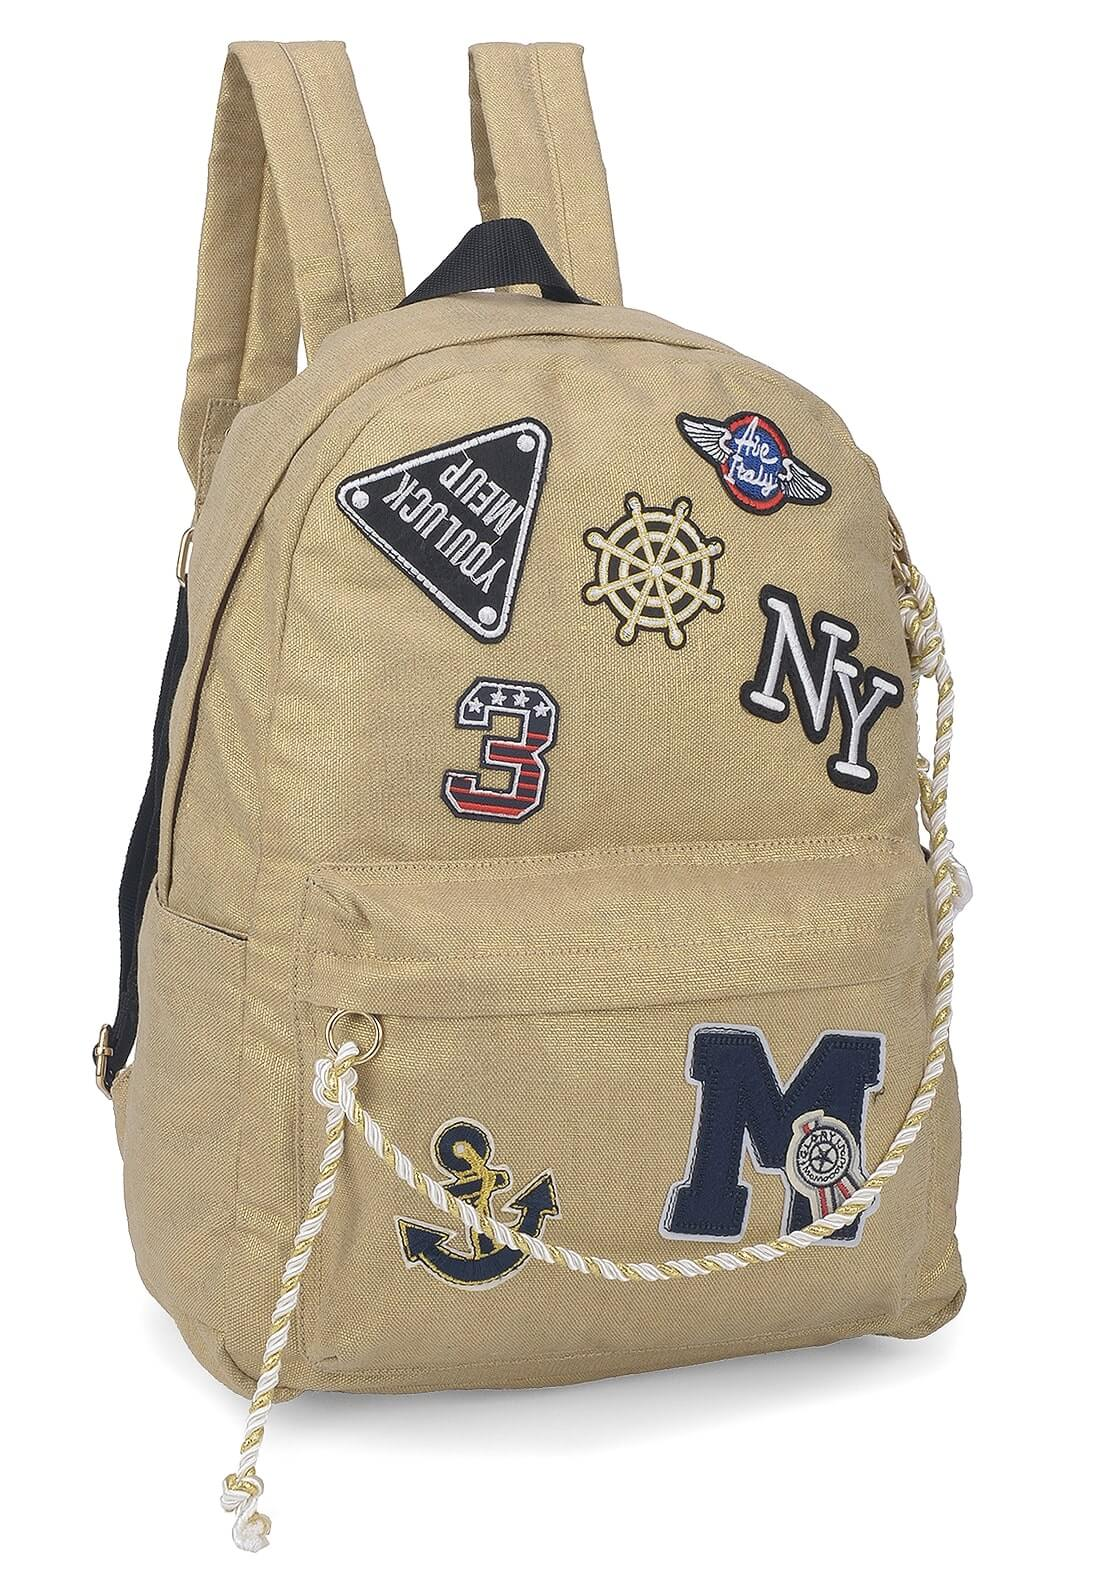 Mochila Escolar Up4you Patchwork Canvas Tumblr Ouro Patches